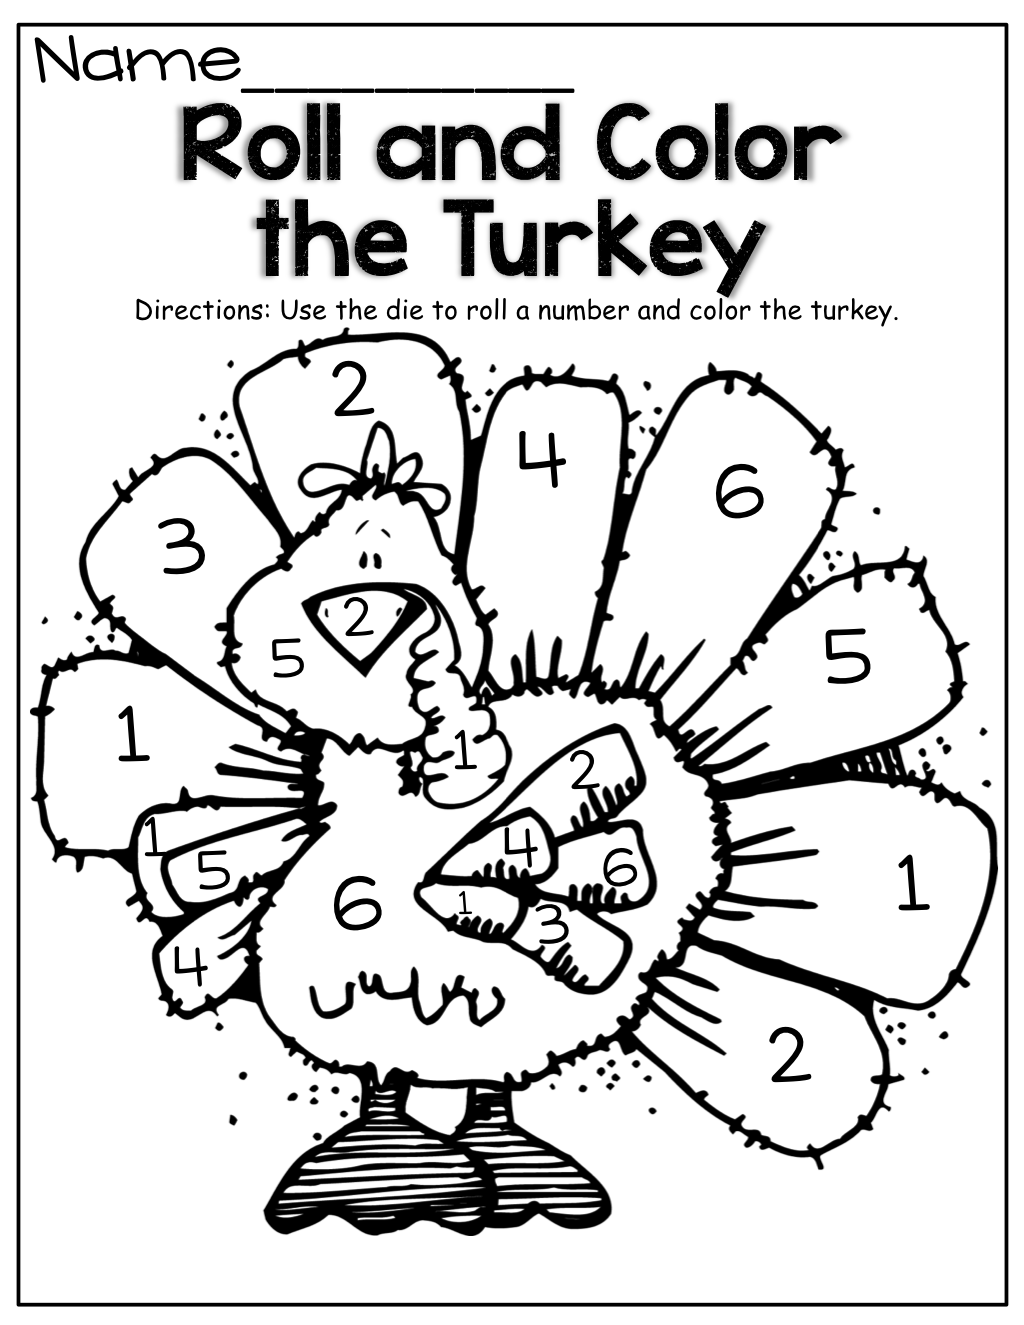 Roll A Die And Color The Turkey This Could Work With Other Holidays As Well Change Numbers To 2 Dice